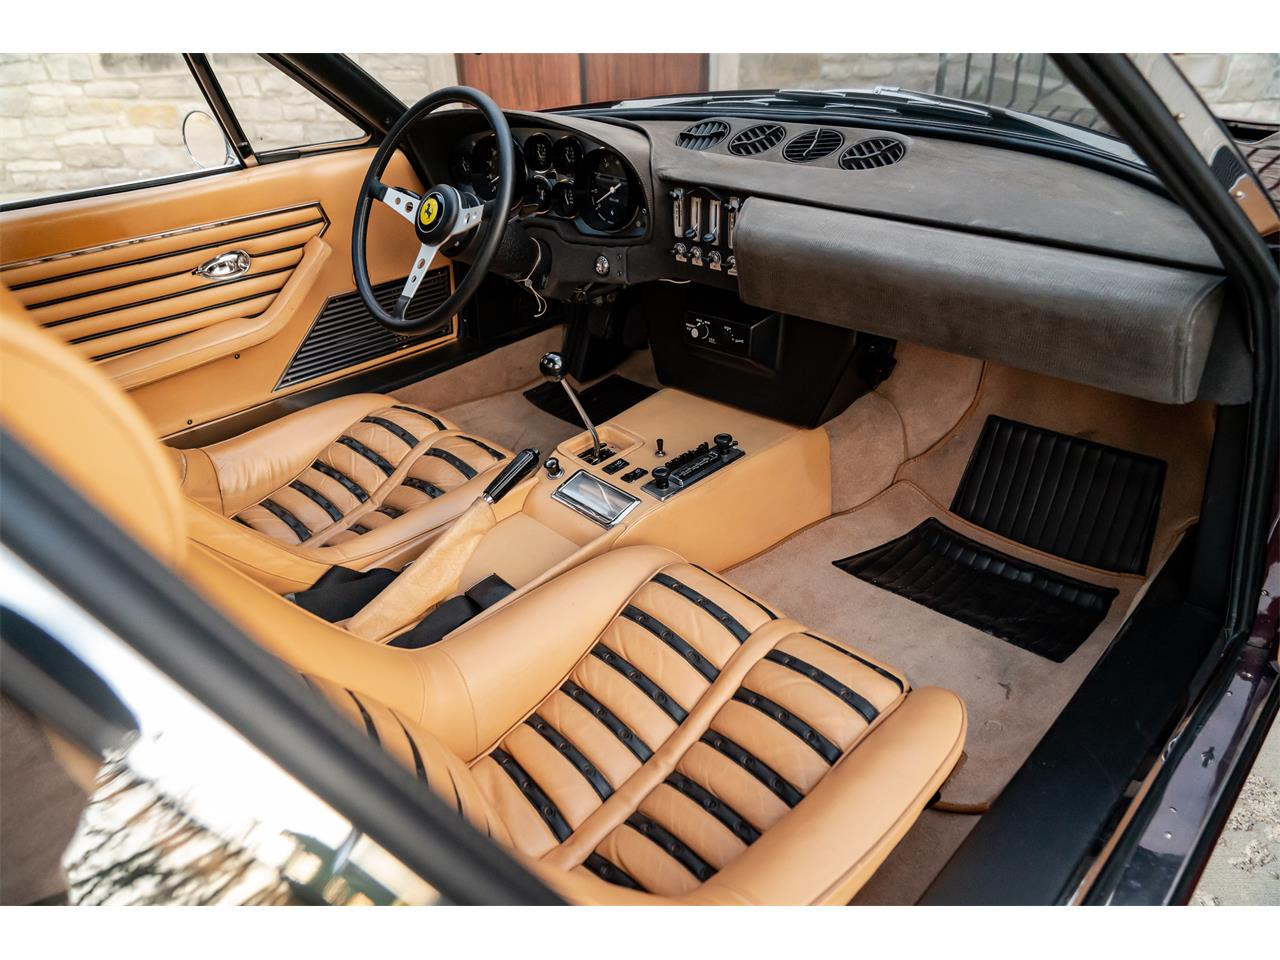 Large Picture of Classic 1972 365 GTB/4 Daytona - $725,000.00 Offered by LBI Limited - QL32